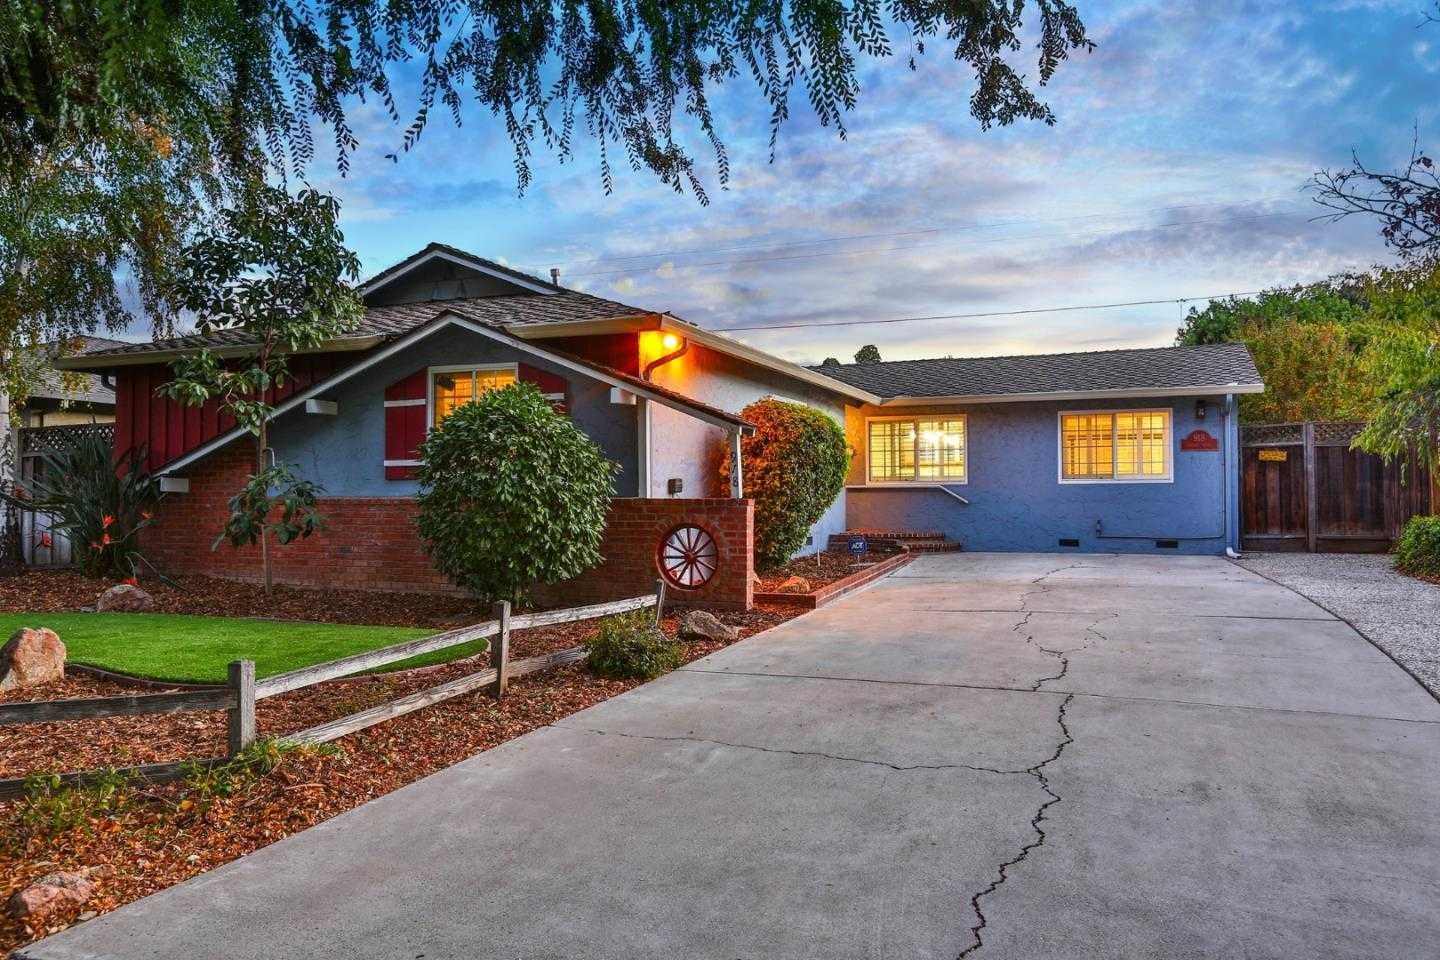 $998,888 - 3Br/2Ba -  for Sale in San Jose